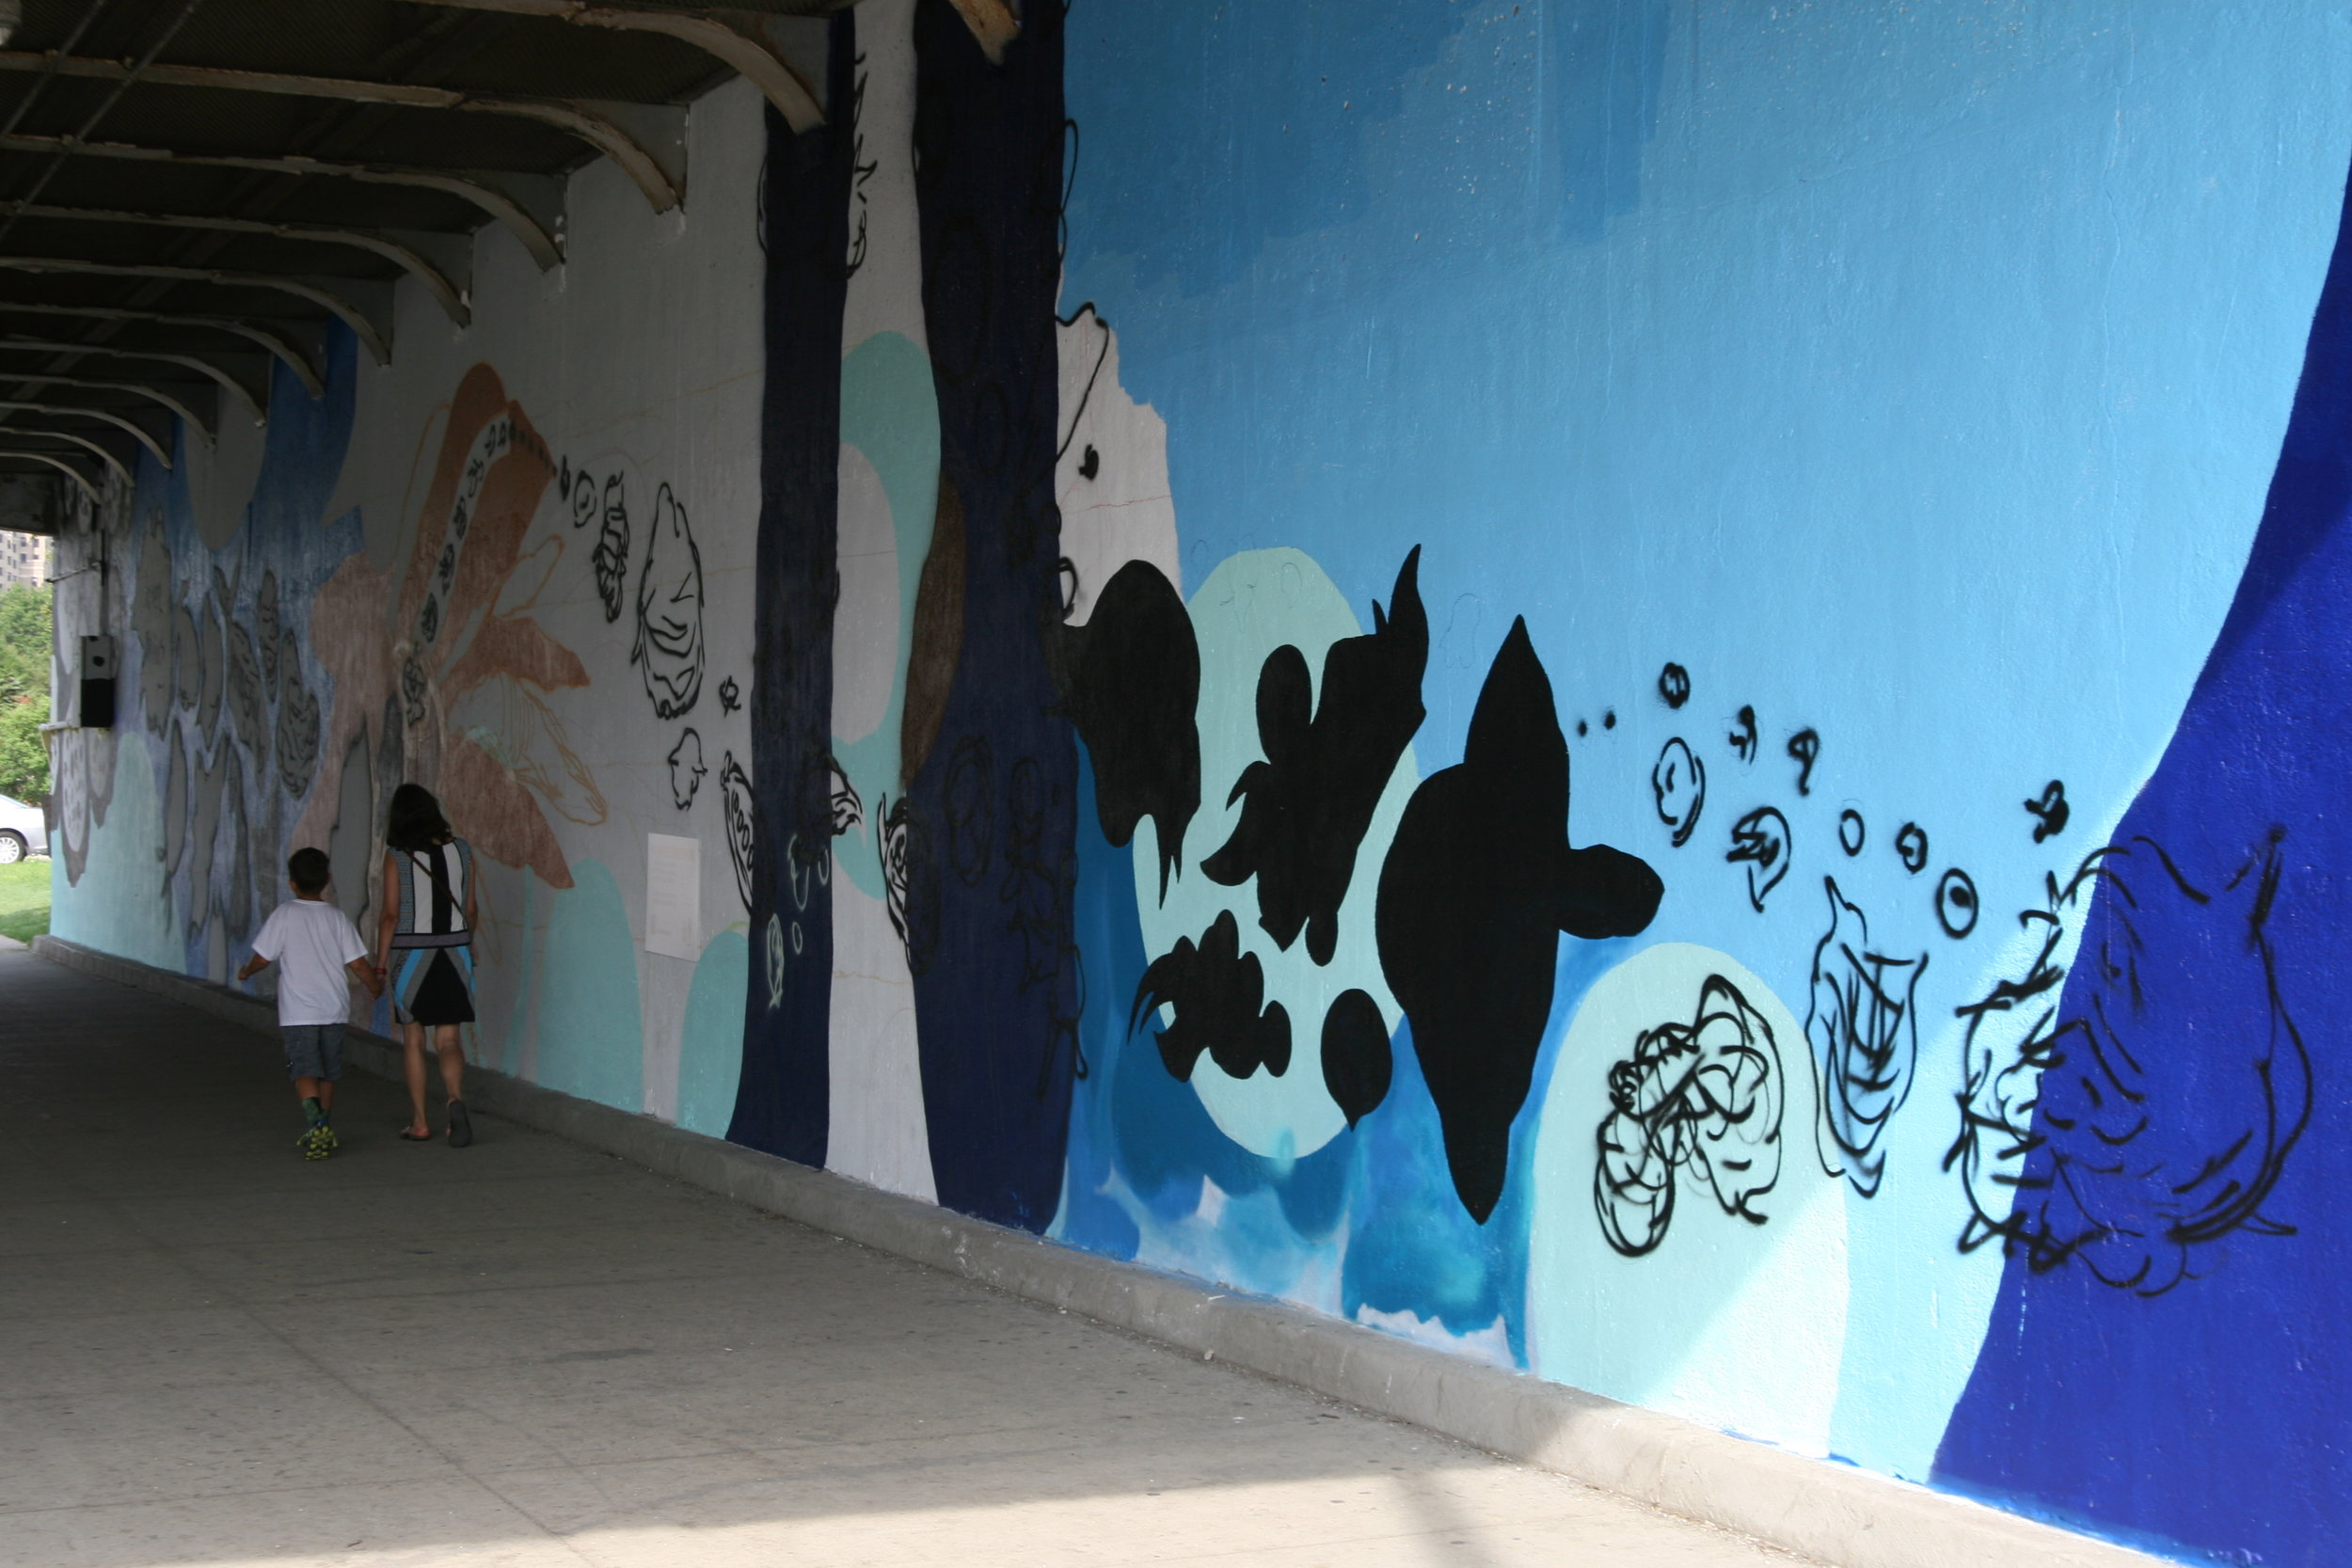 Work is continuing on the mural